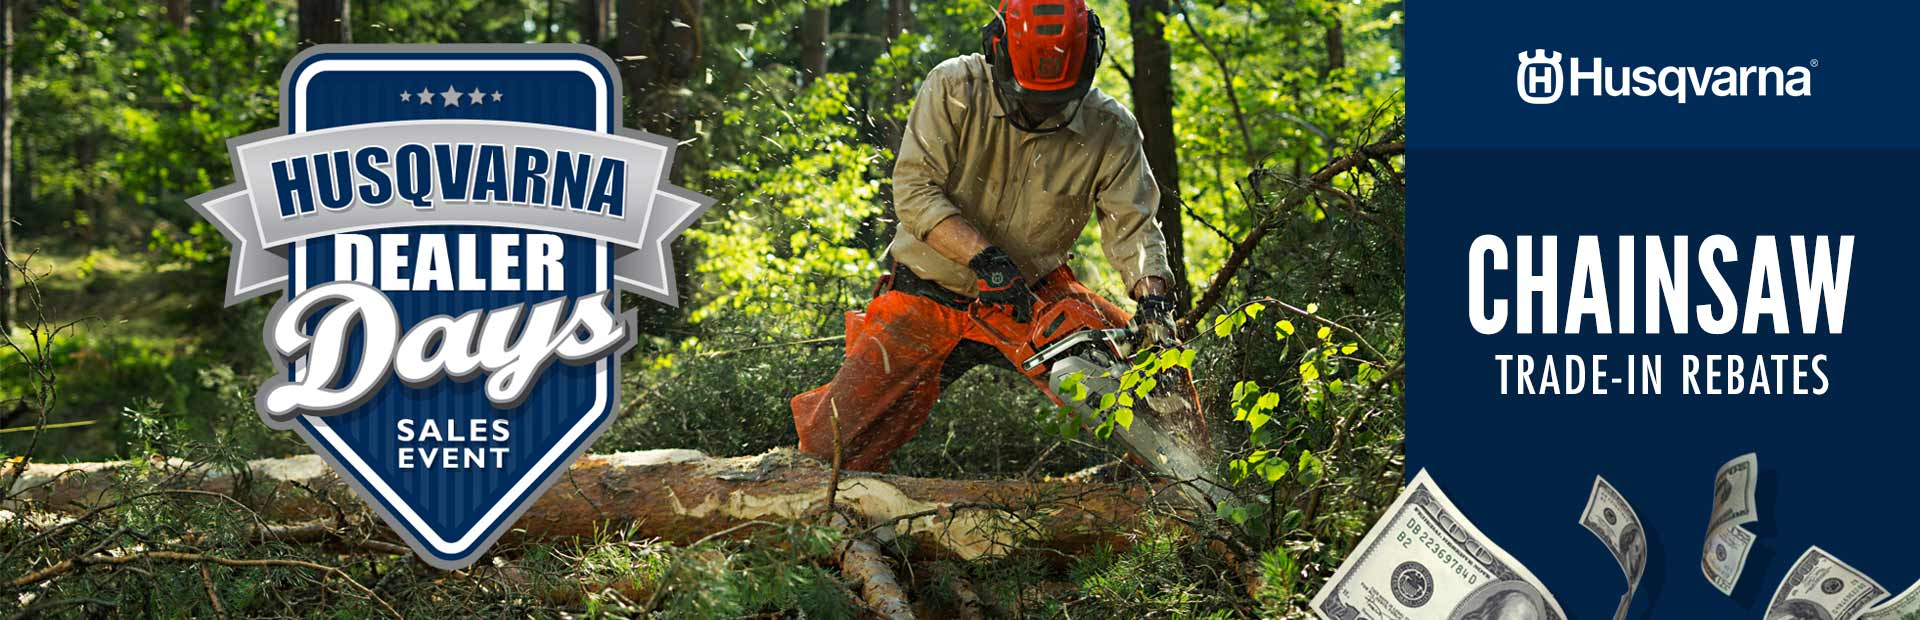 Husqvarna: Chainsaw Trade-In Rebates